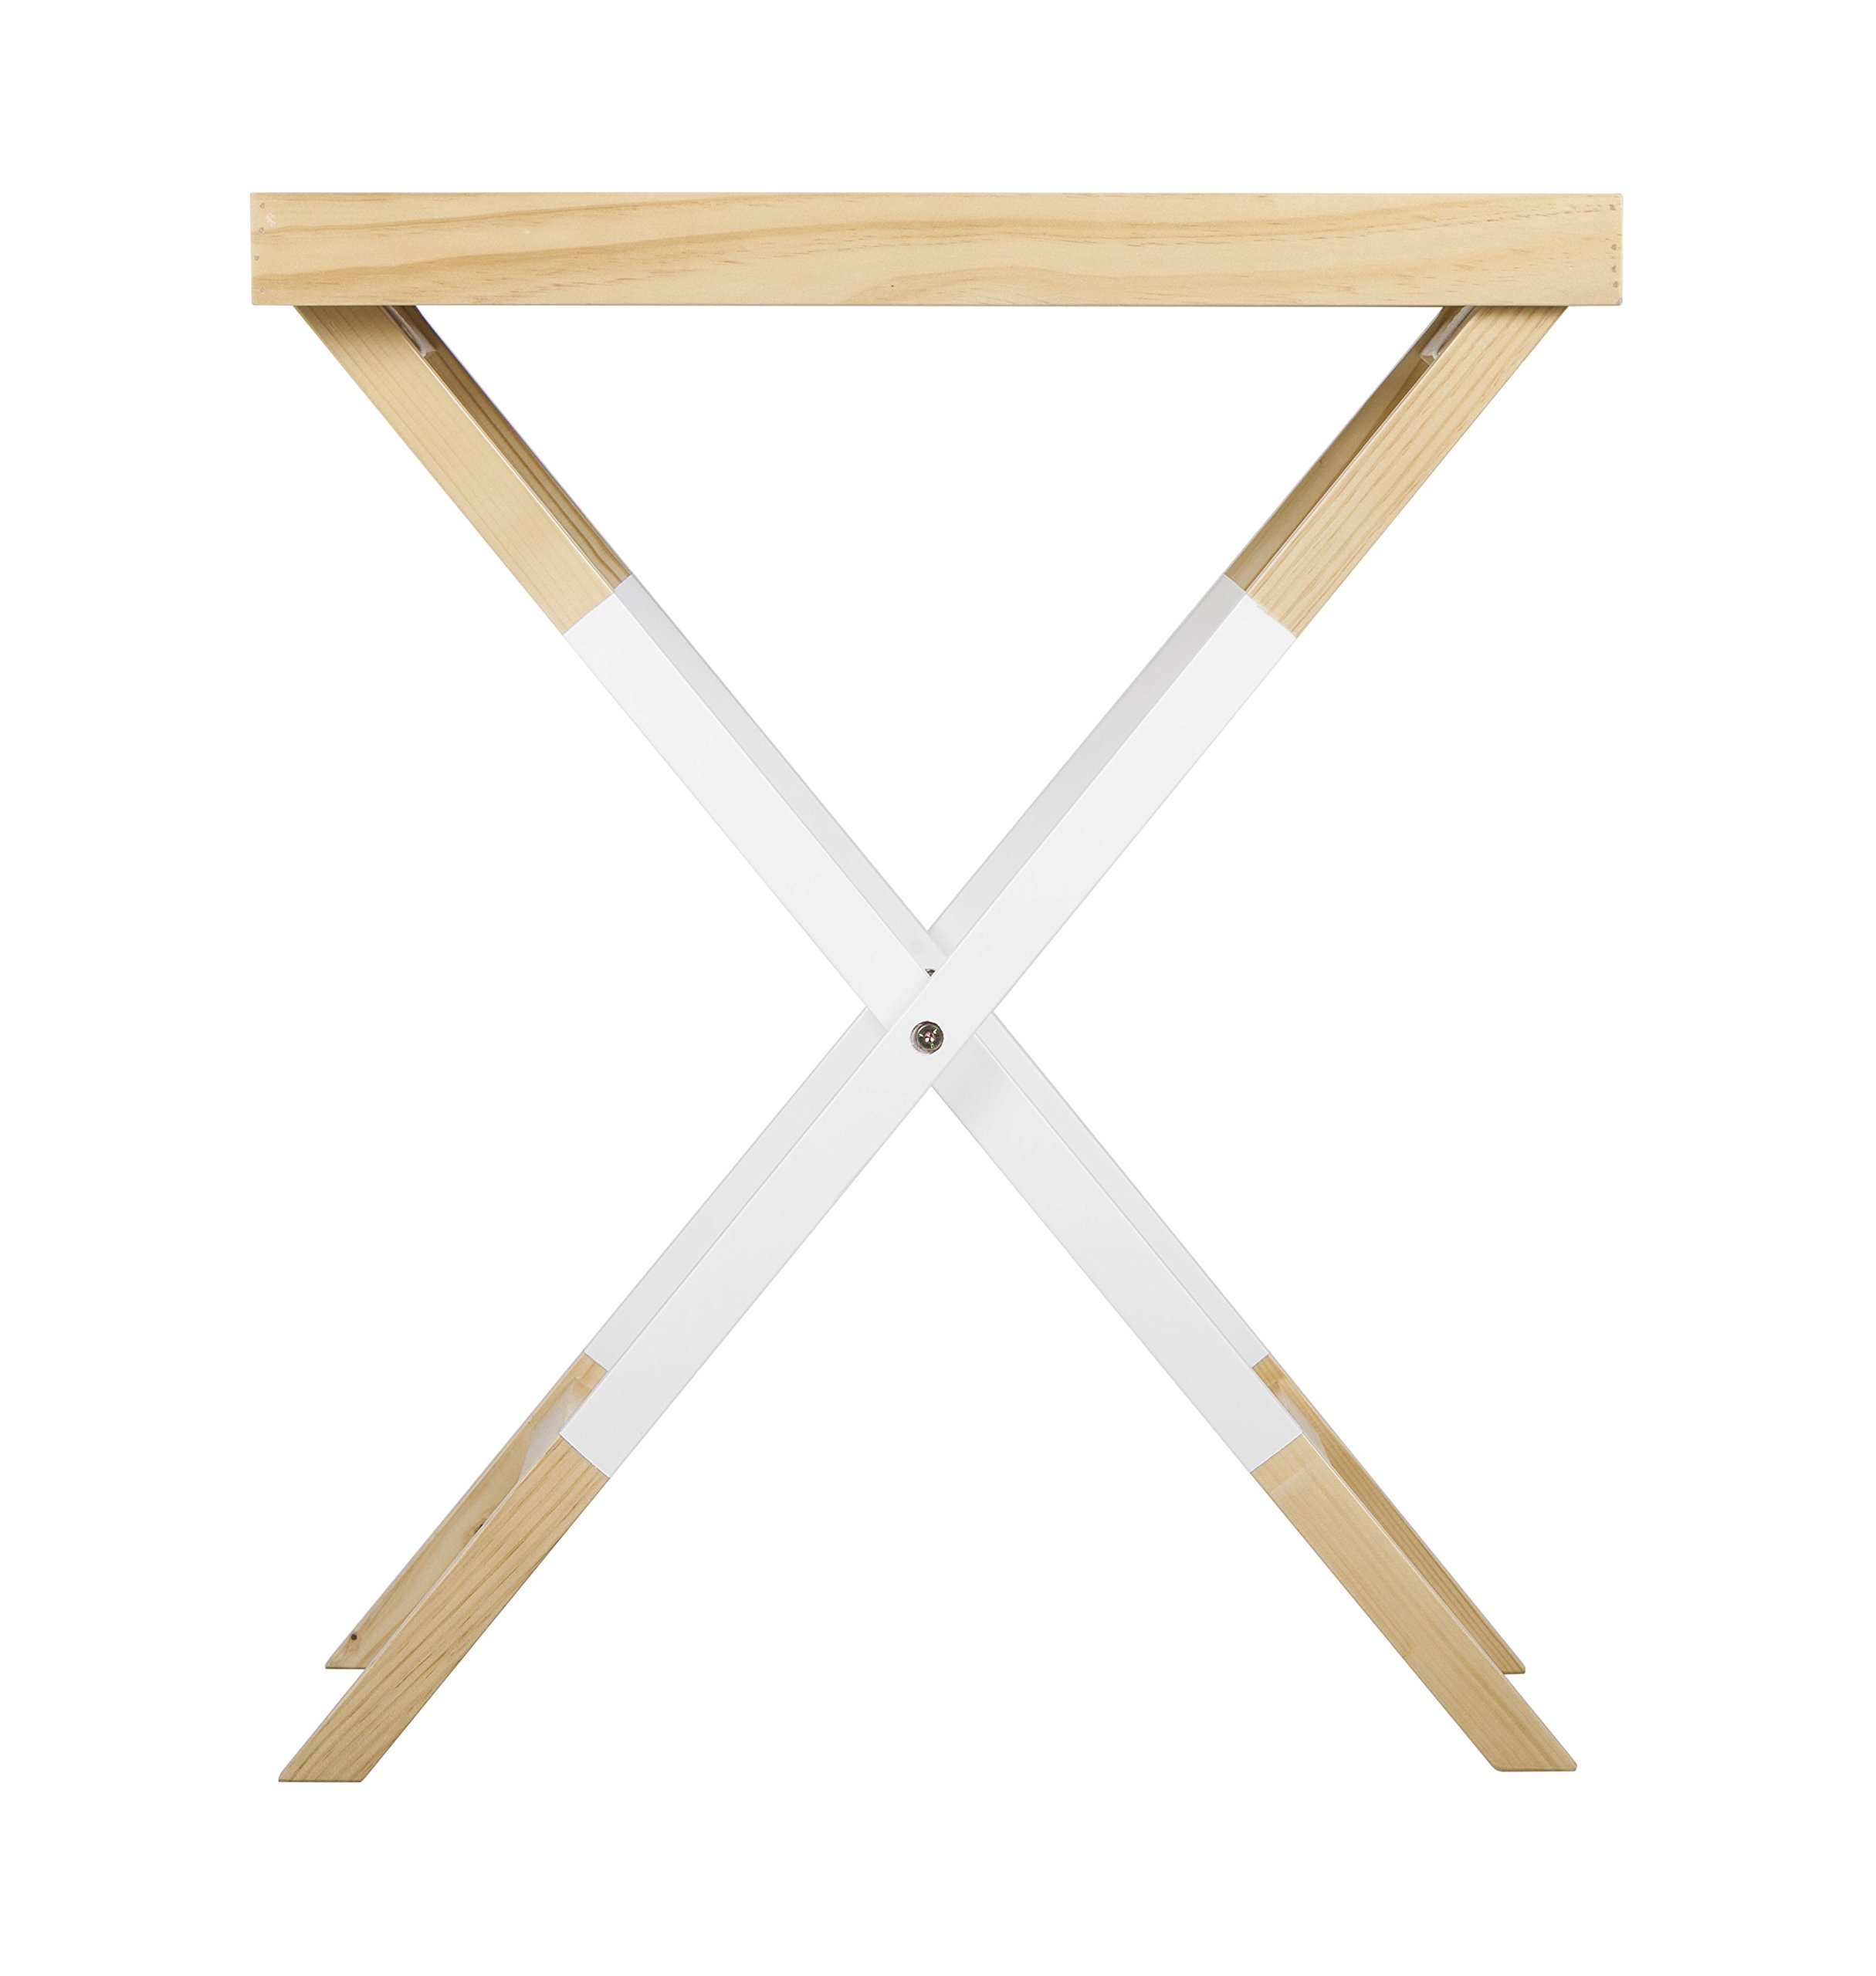 Universal Experts FUST10026A Remus Folding Tray Table, Oak/White by Universal Experts (Image #7)